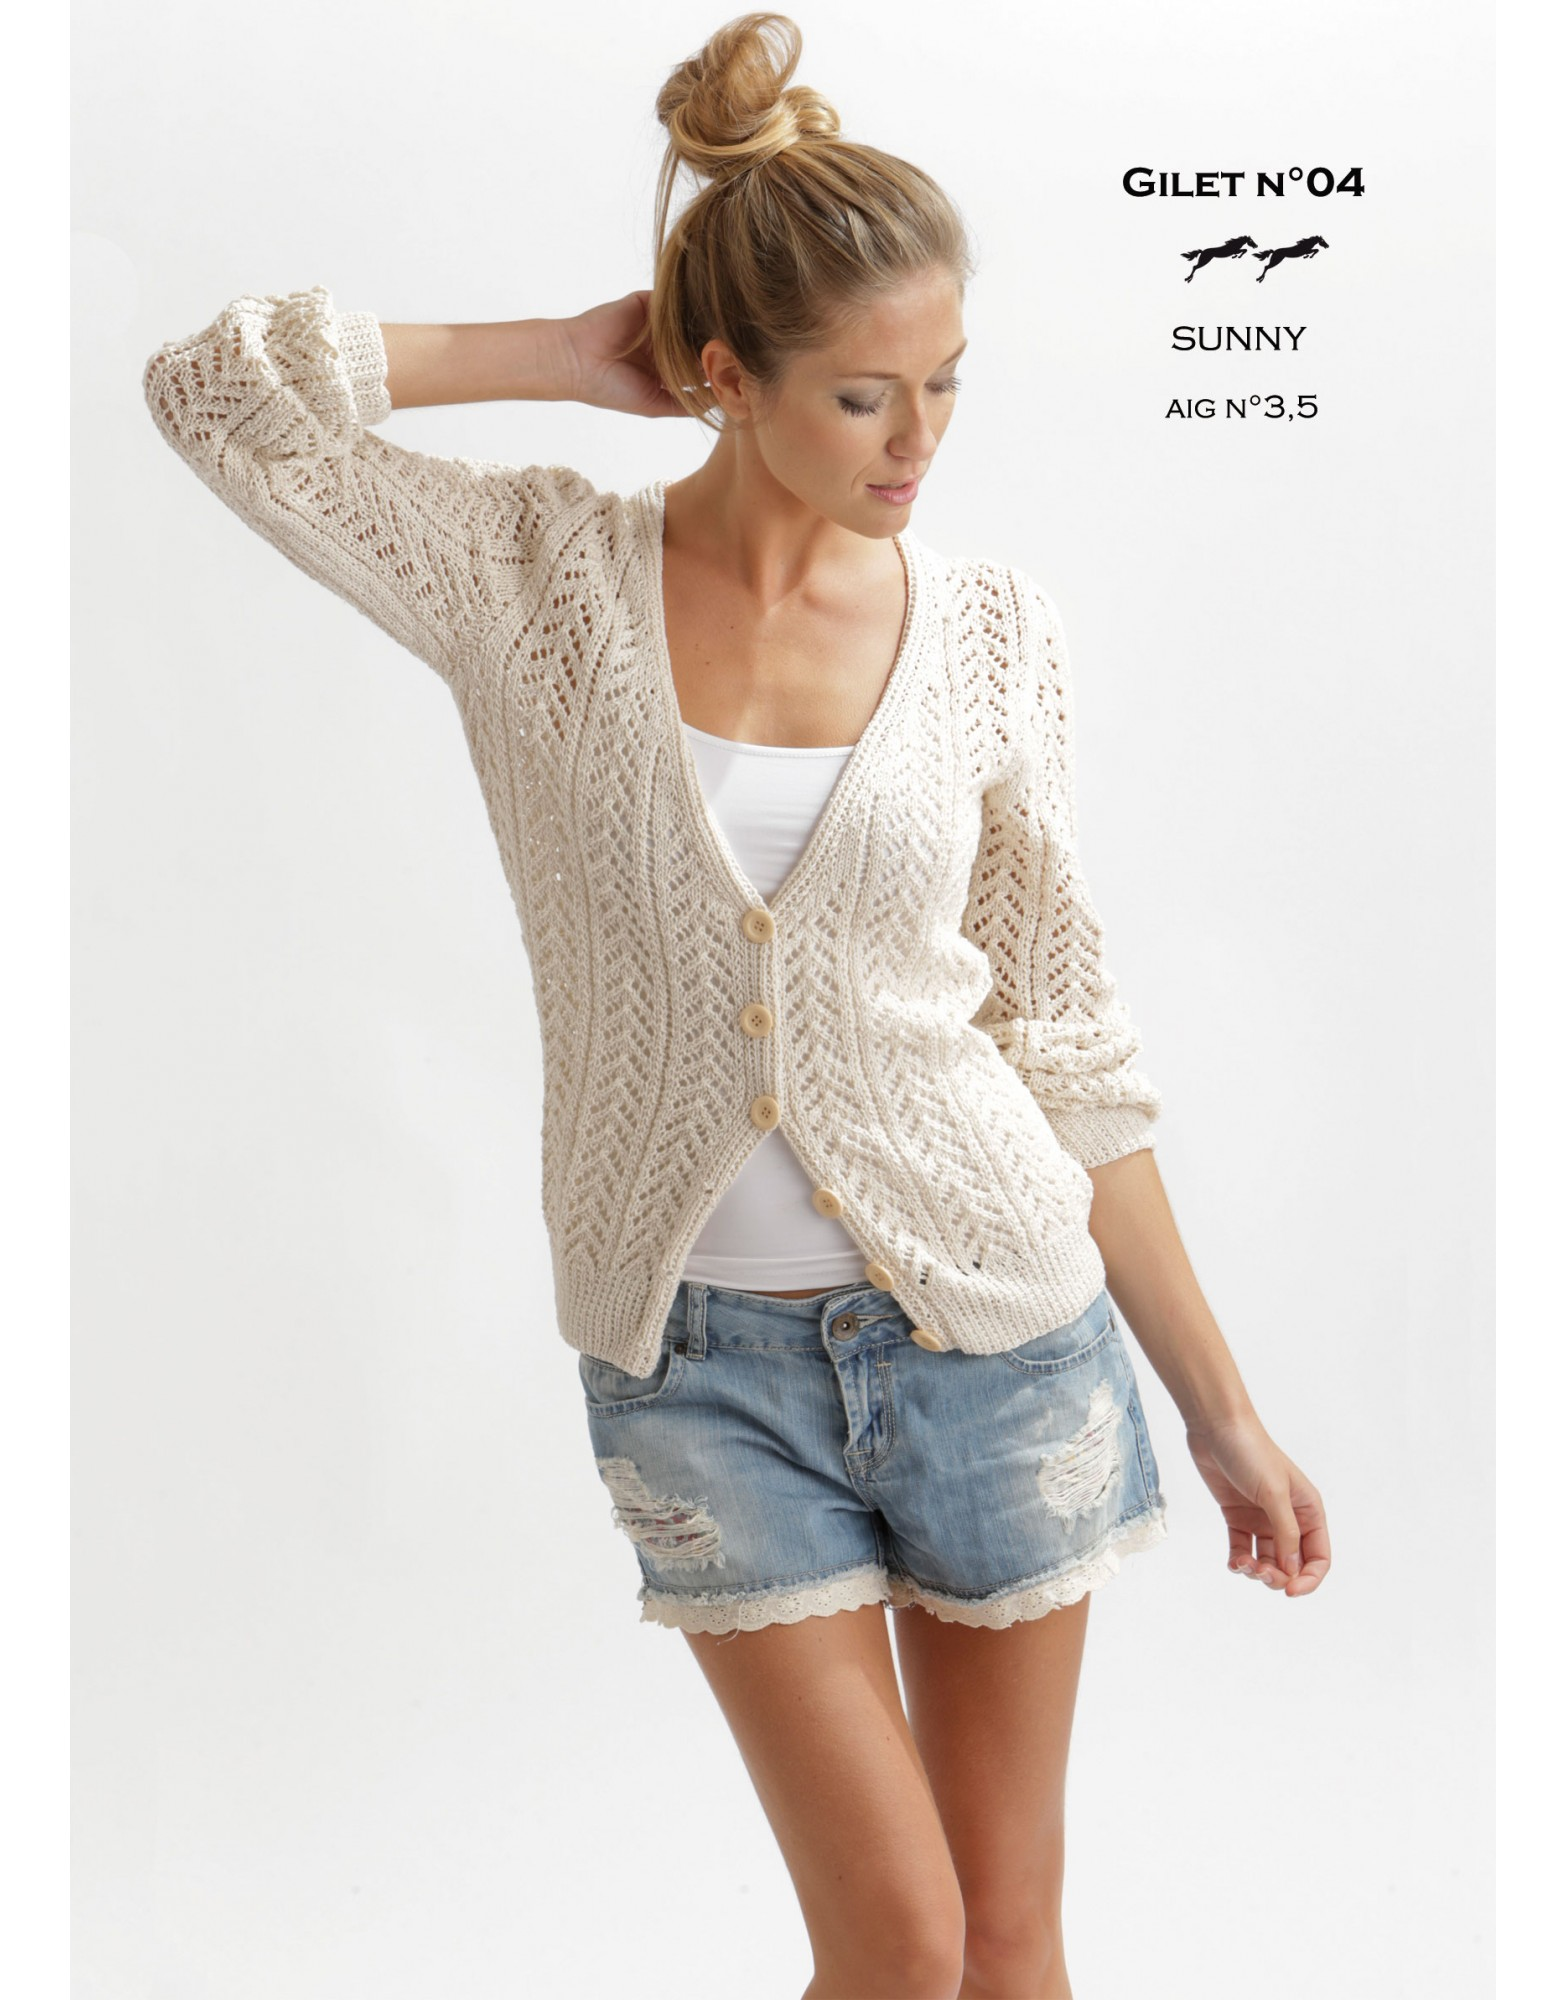 Arrow Lace Cardigan Free Knitting Pattern for Women ⋆ Knitting Bee